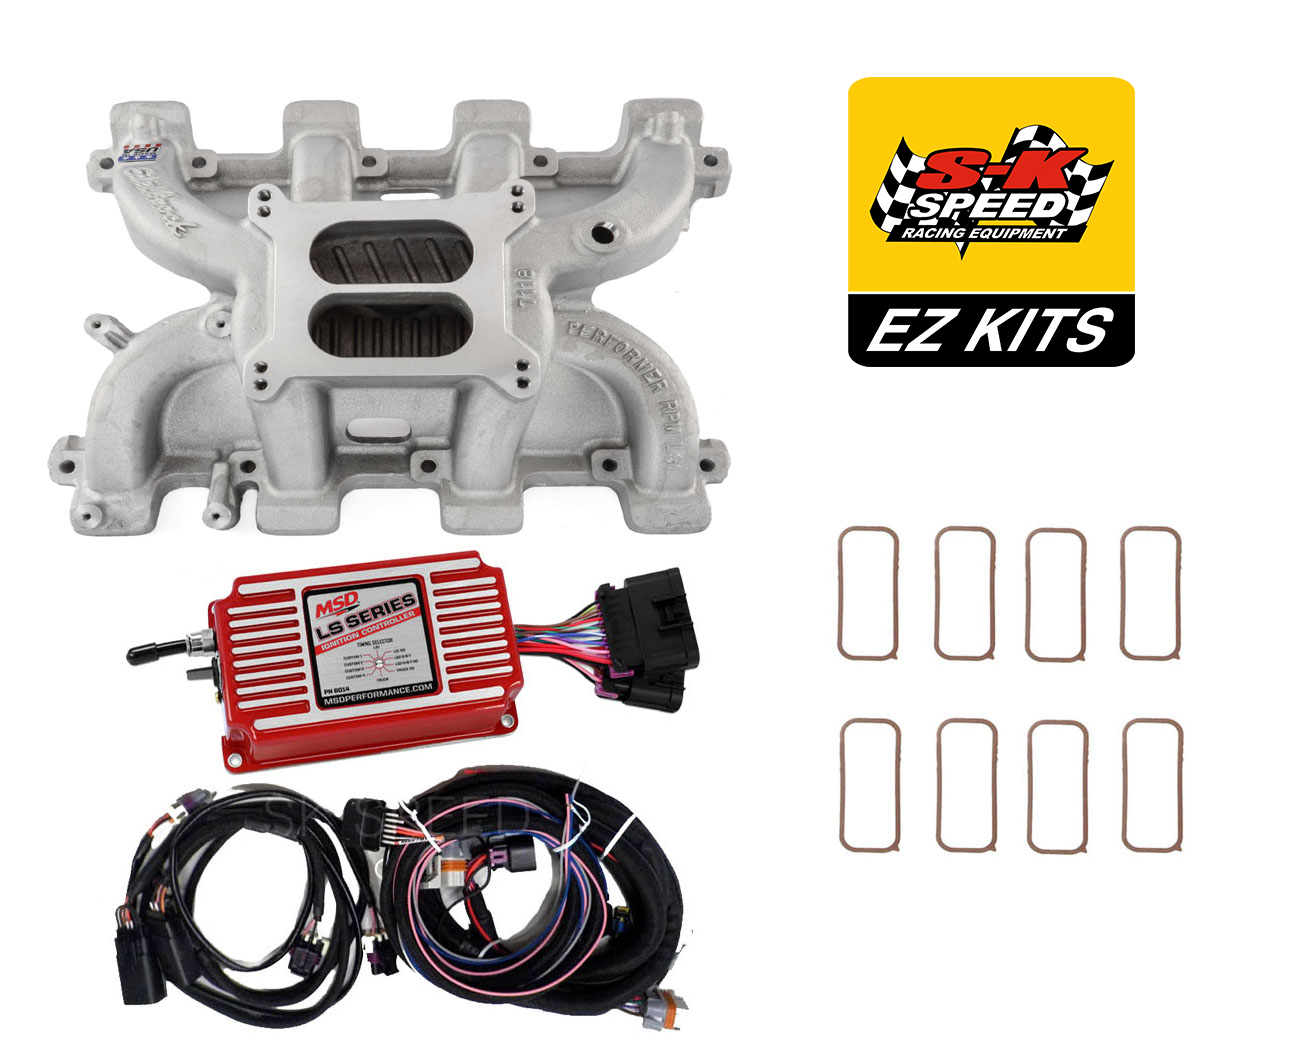 Msd 6014 Wiring Harness Detailed Schematics Diagram 6ls Ls Cathedral Carb Conversion Kit Edelbrock Performer Intake Ford 6al